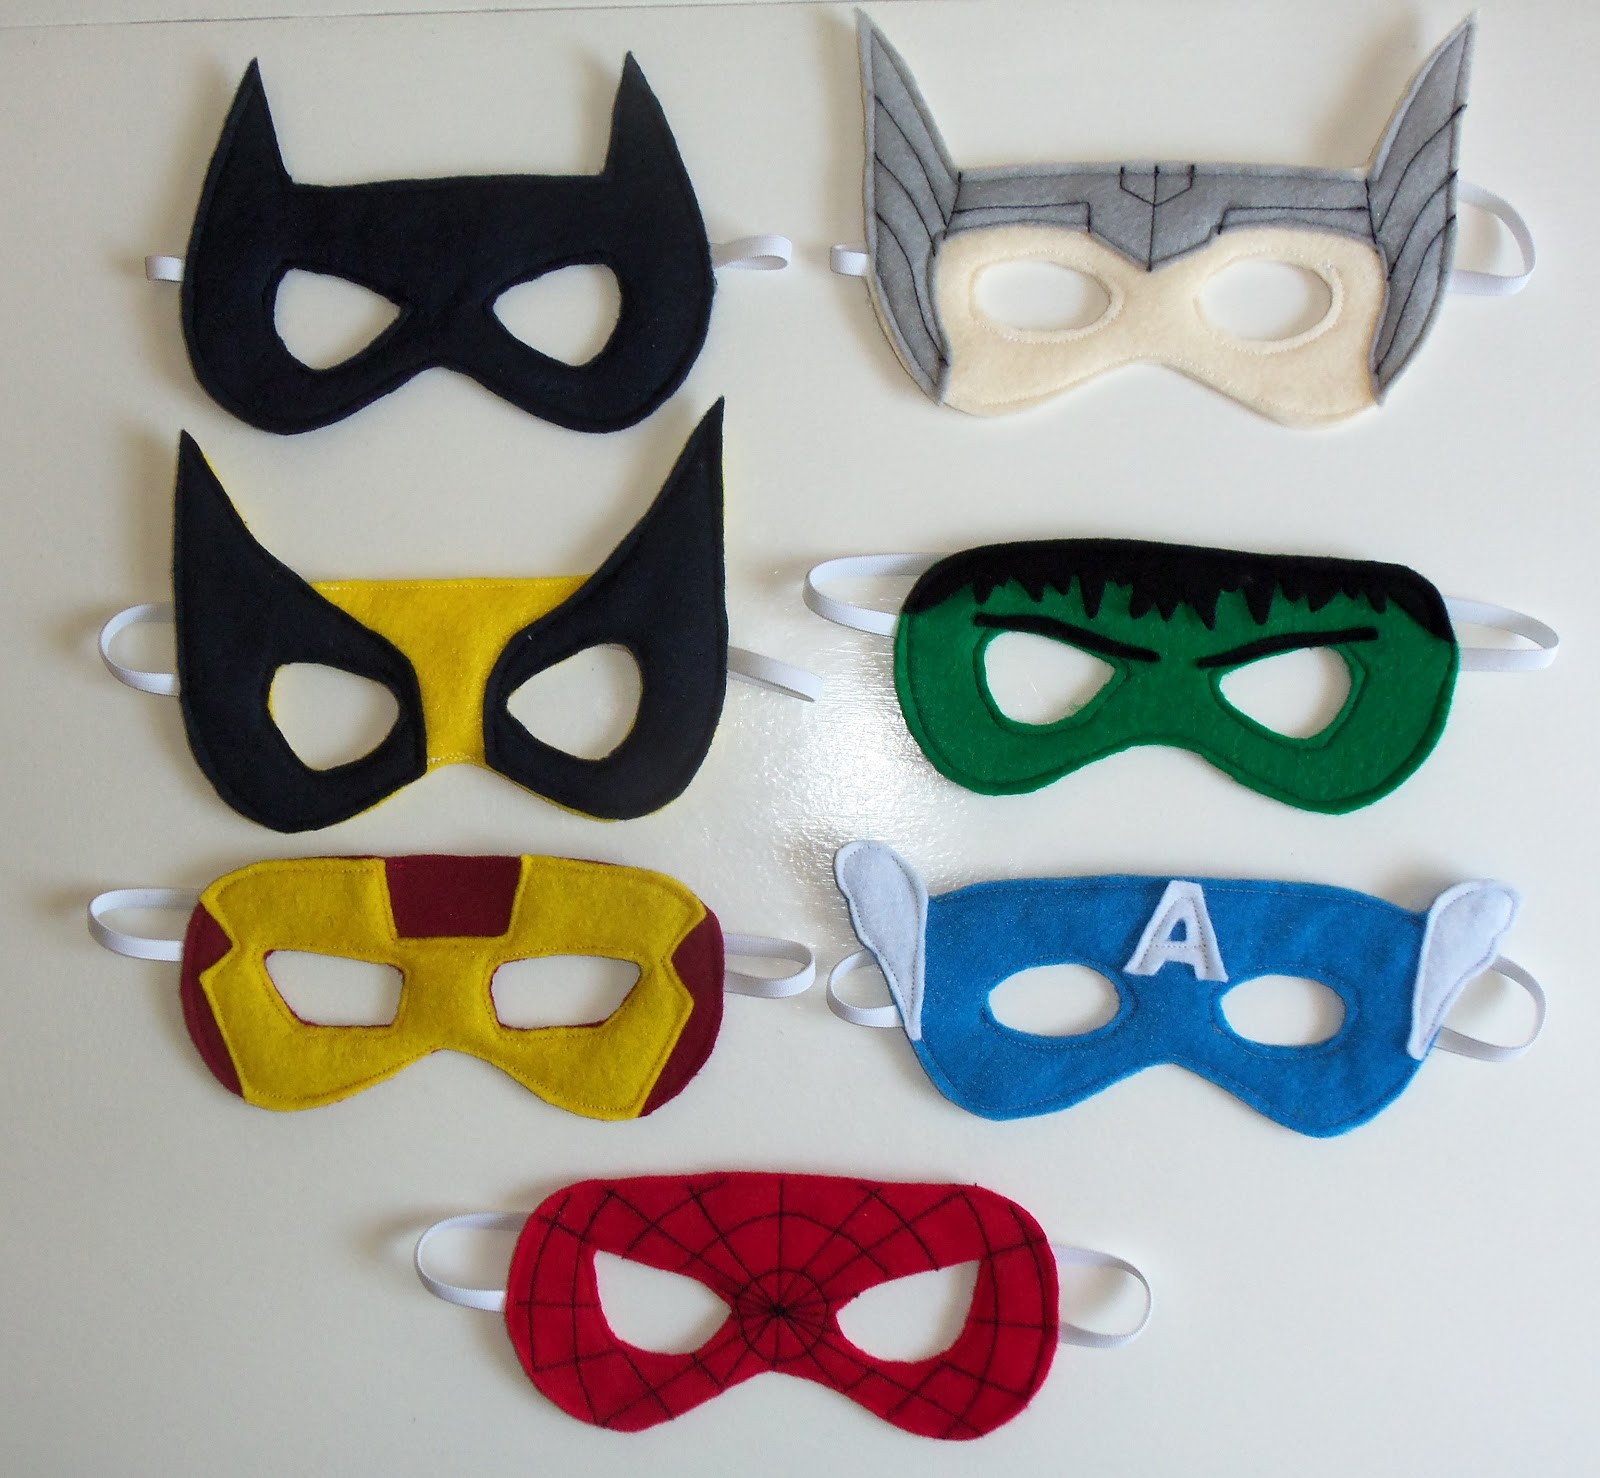 Edit: I'm so glad everyone likes my superhero masks! I hope you will